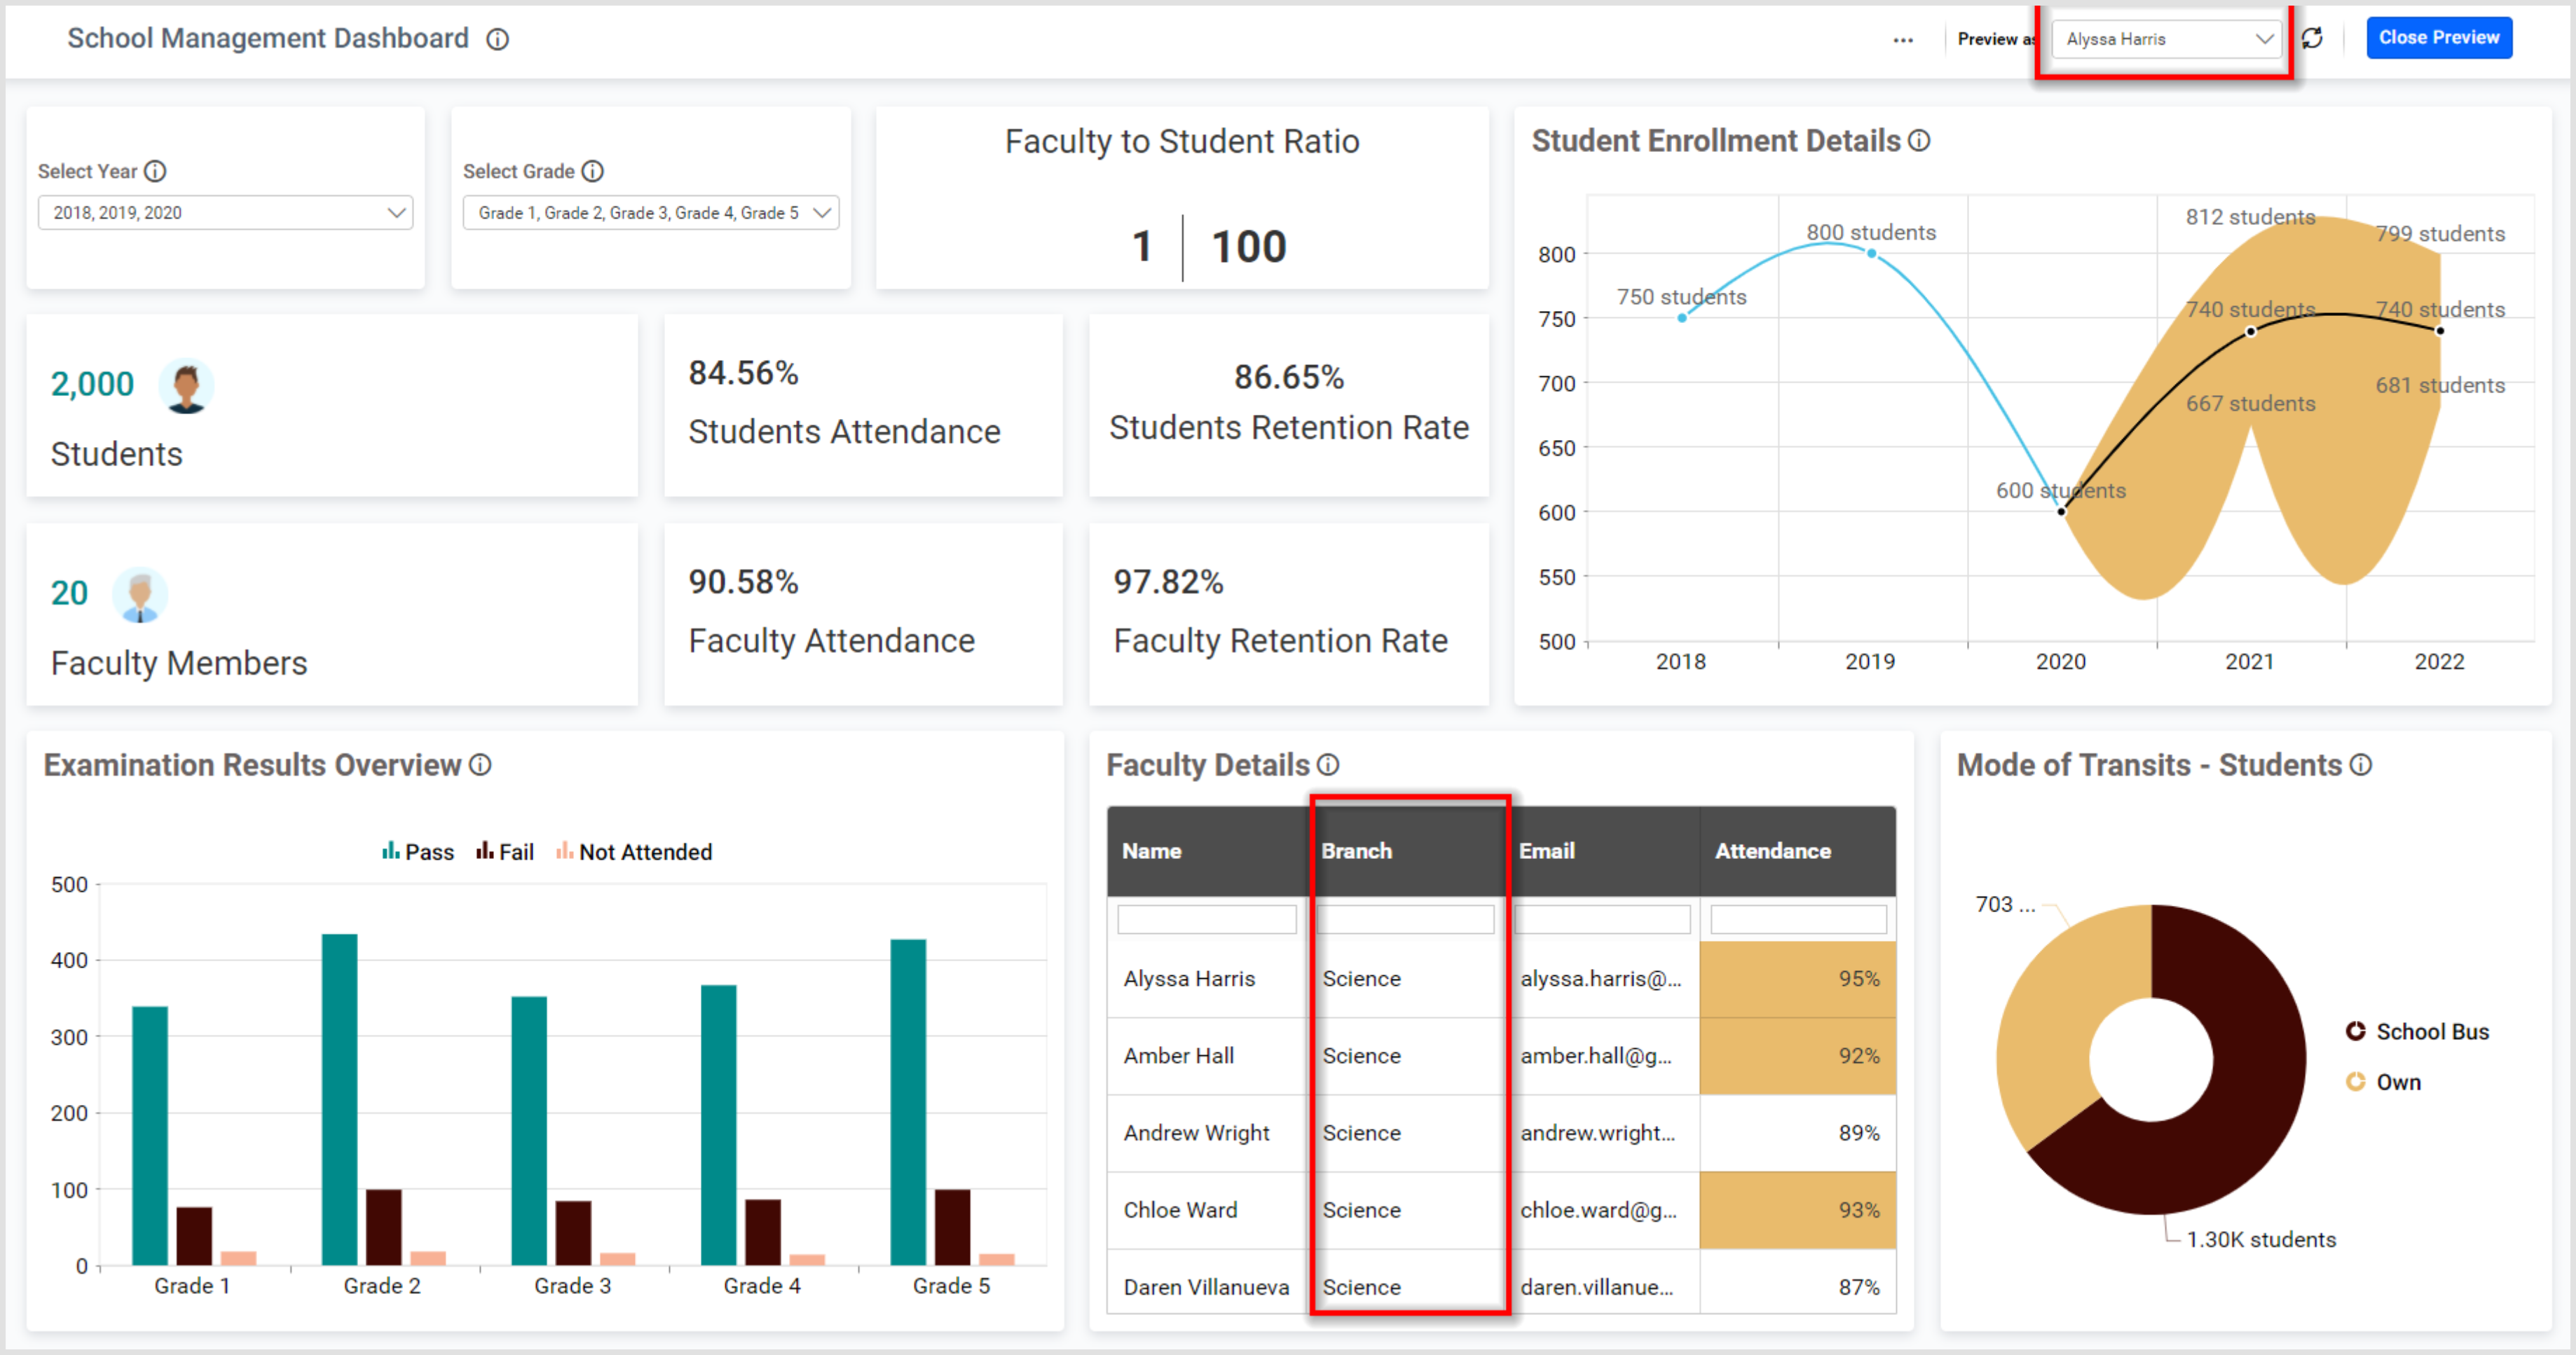 School Management Dashboard with User Filter